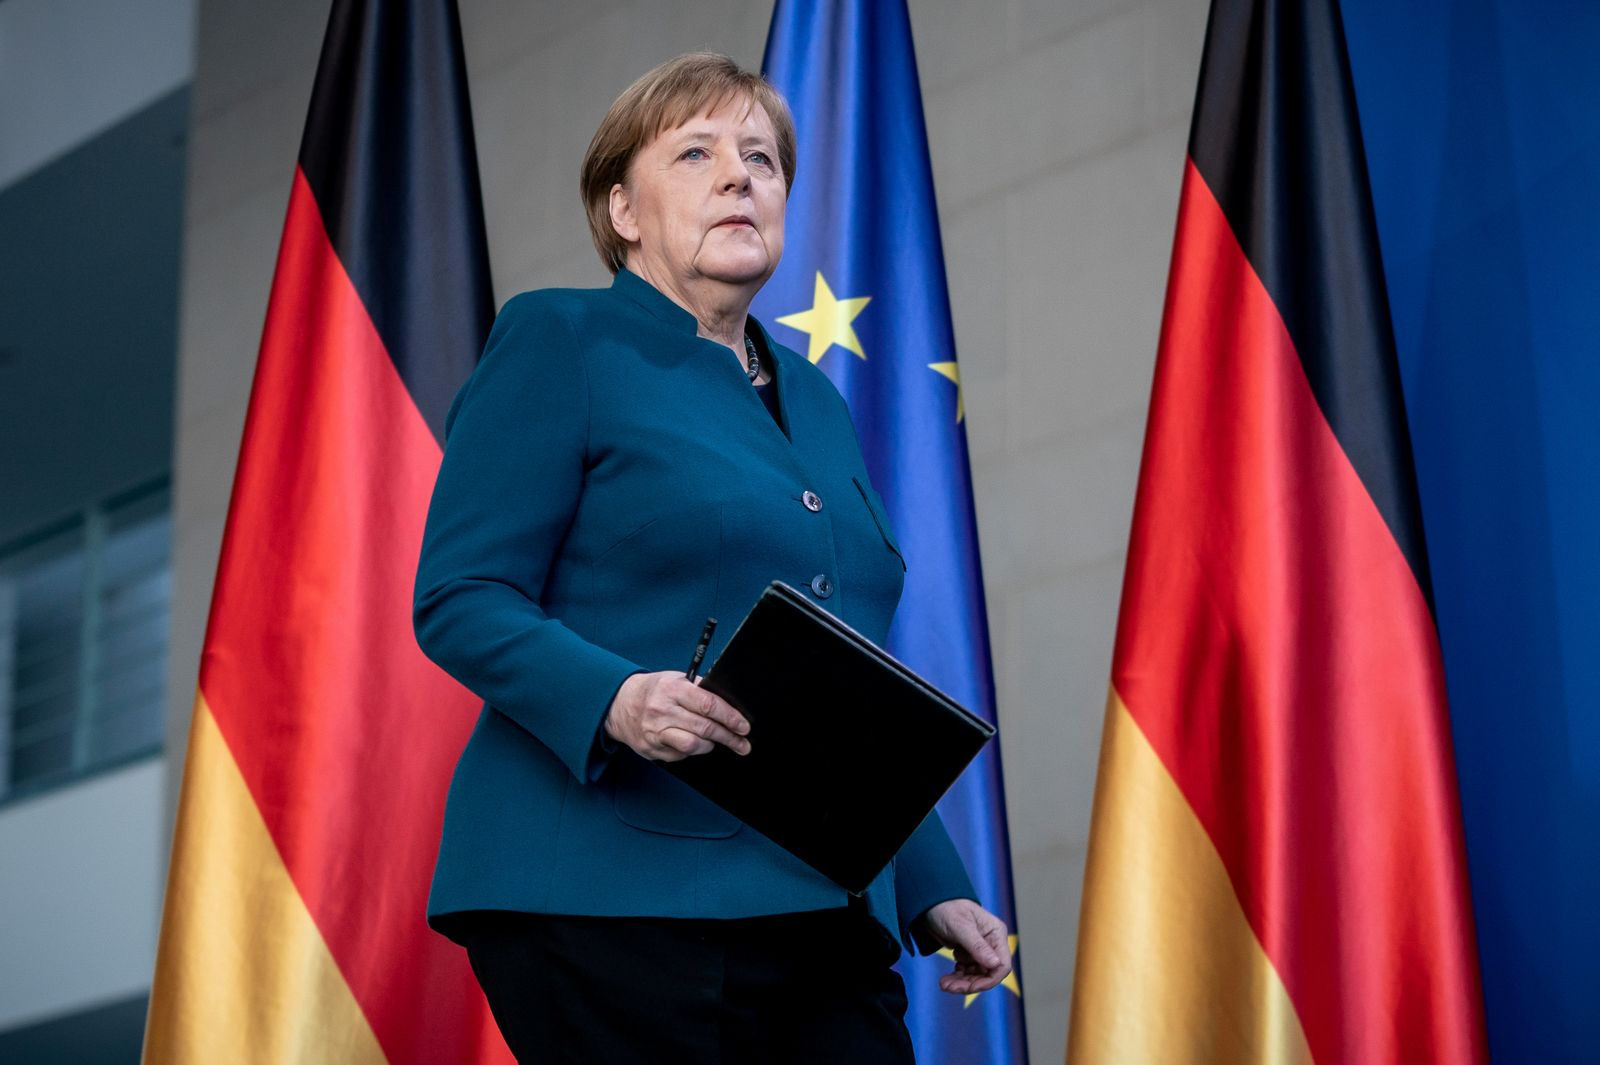 German Chancellor Angela Merkel arrives for a media statement on the spread of coronavirus at the Chancellery in Berlin, Germany